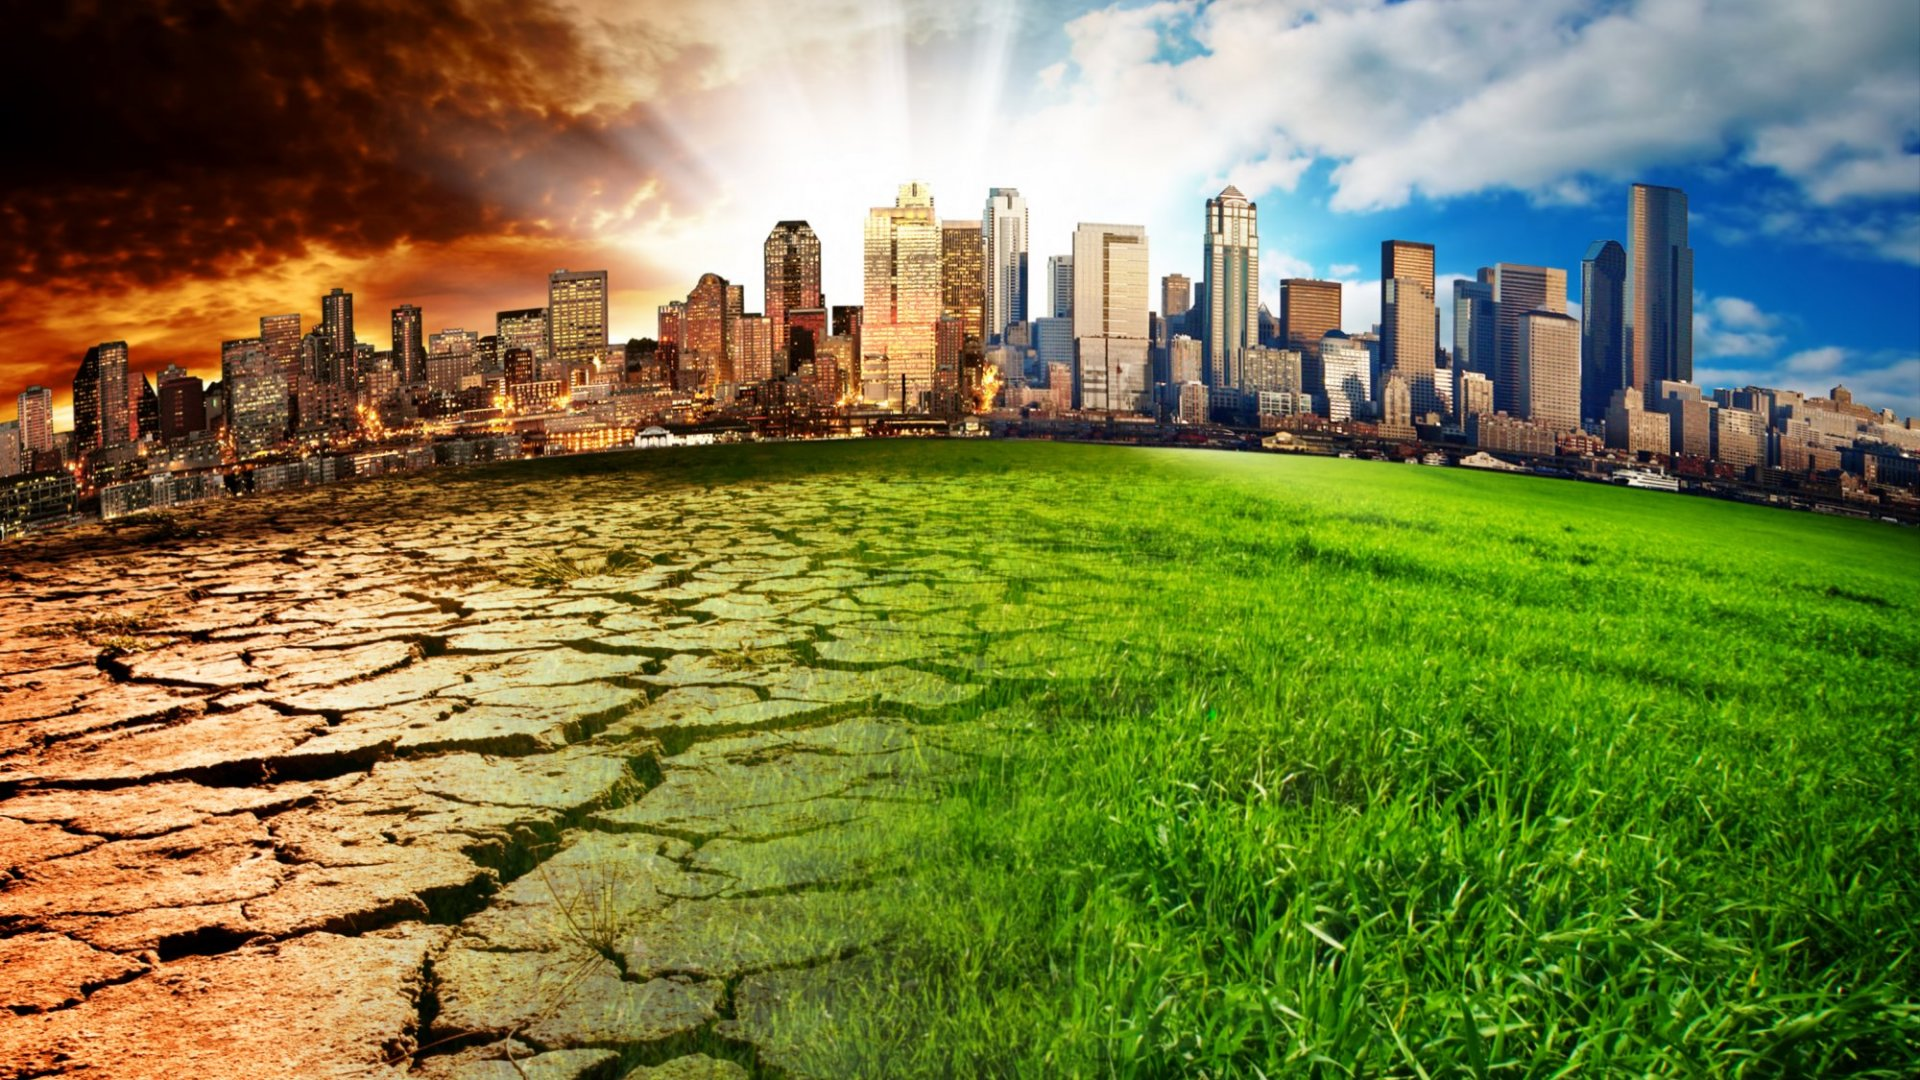 5 Things You Can Do to Ease Global Warming (Besides Turning Off the Lights)